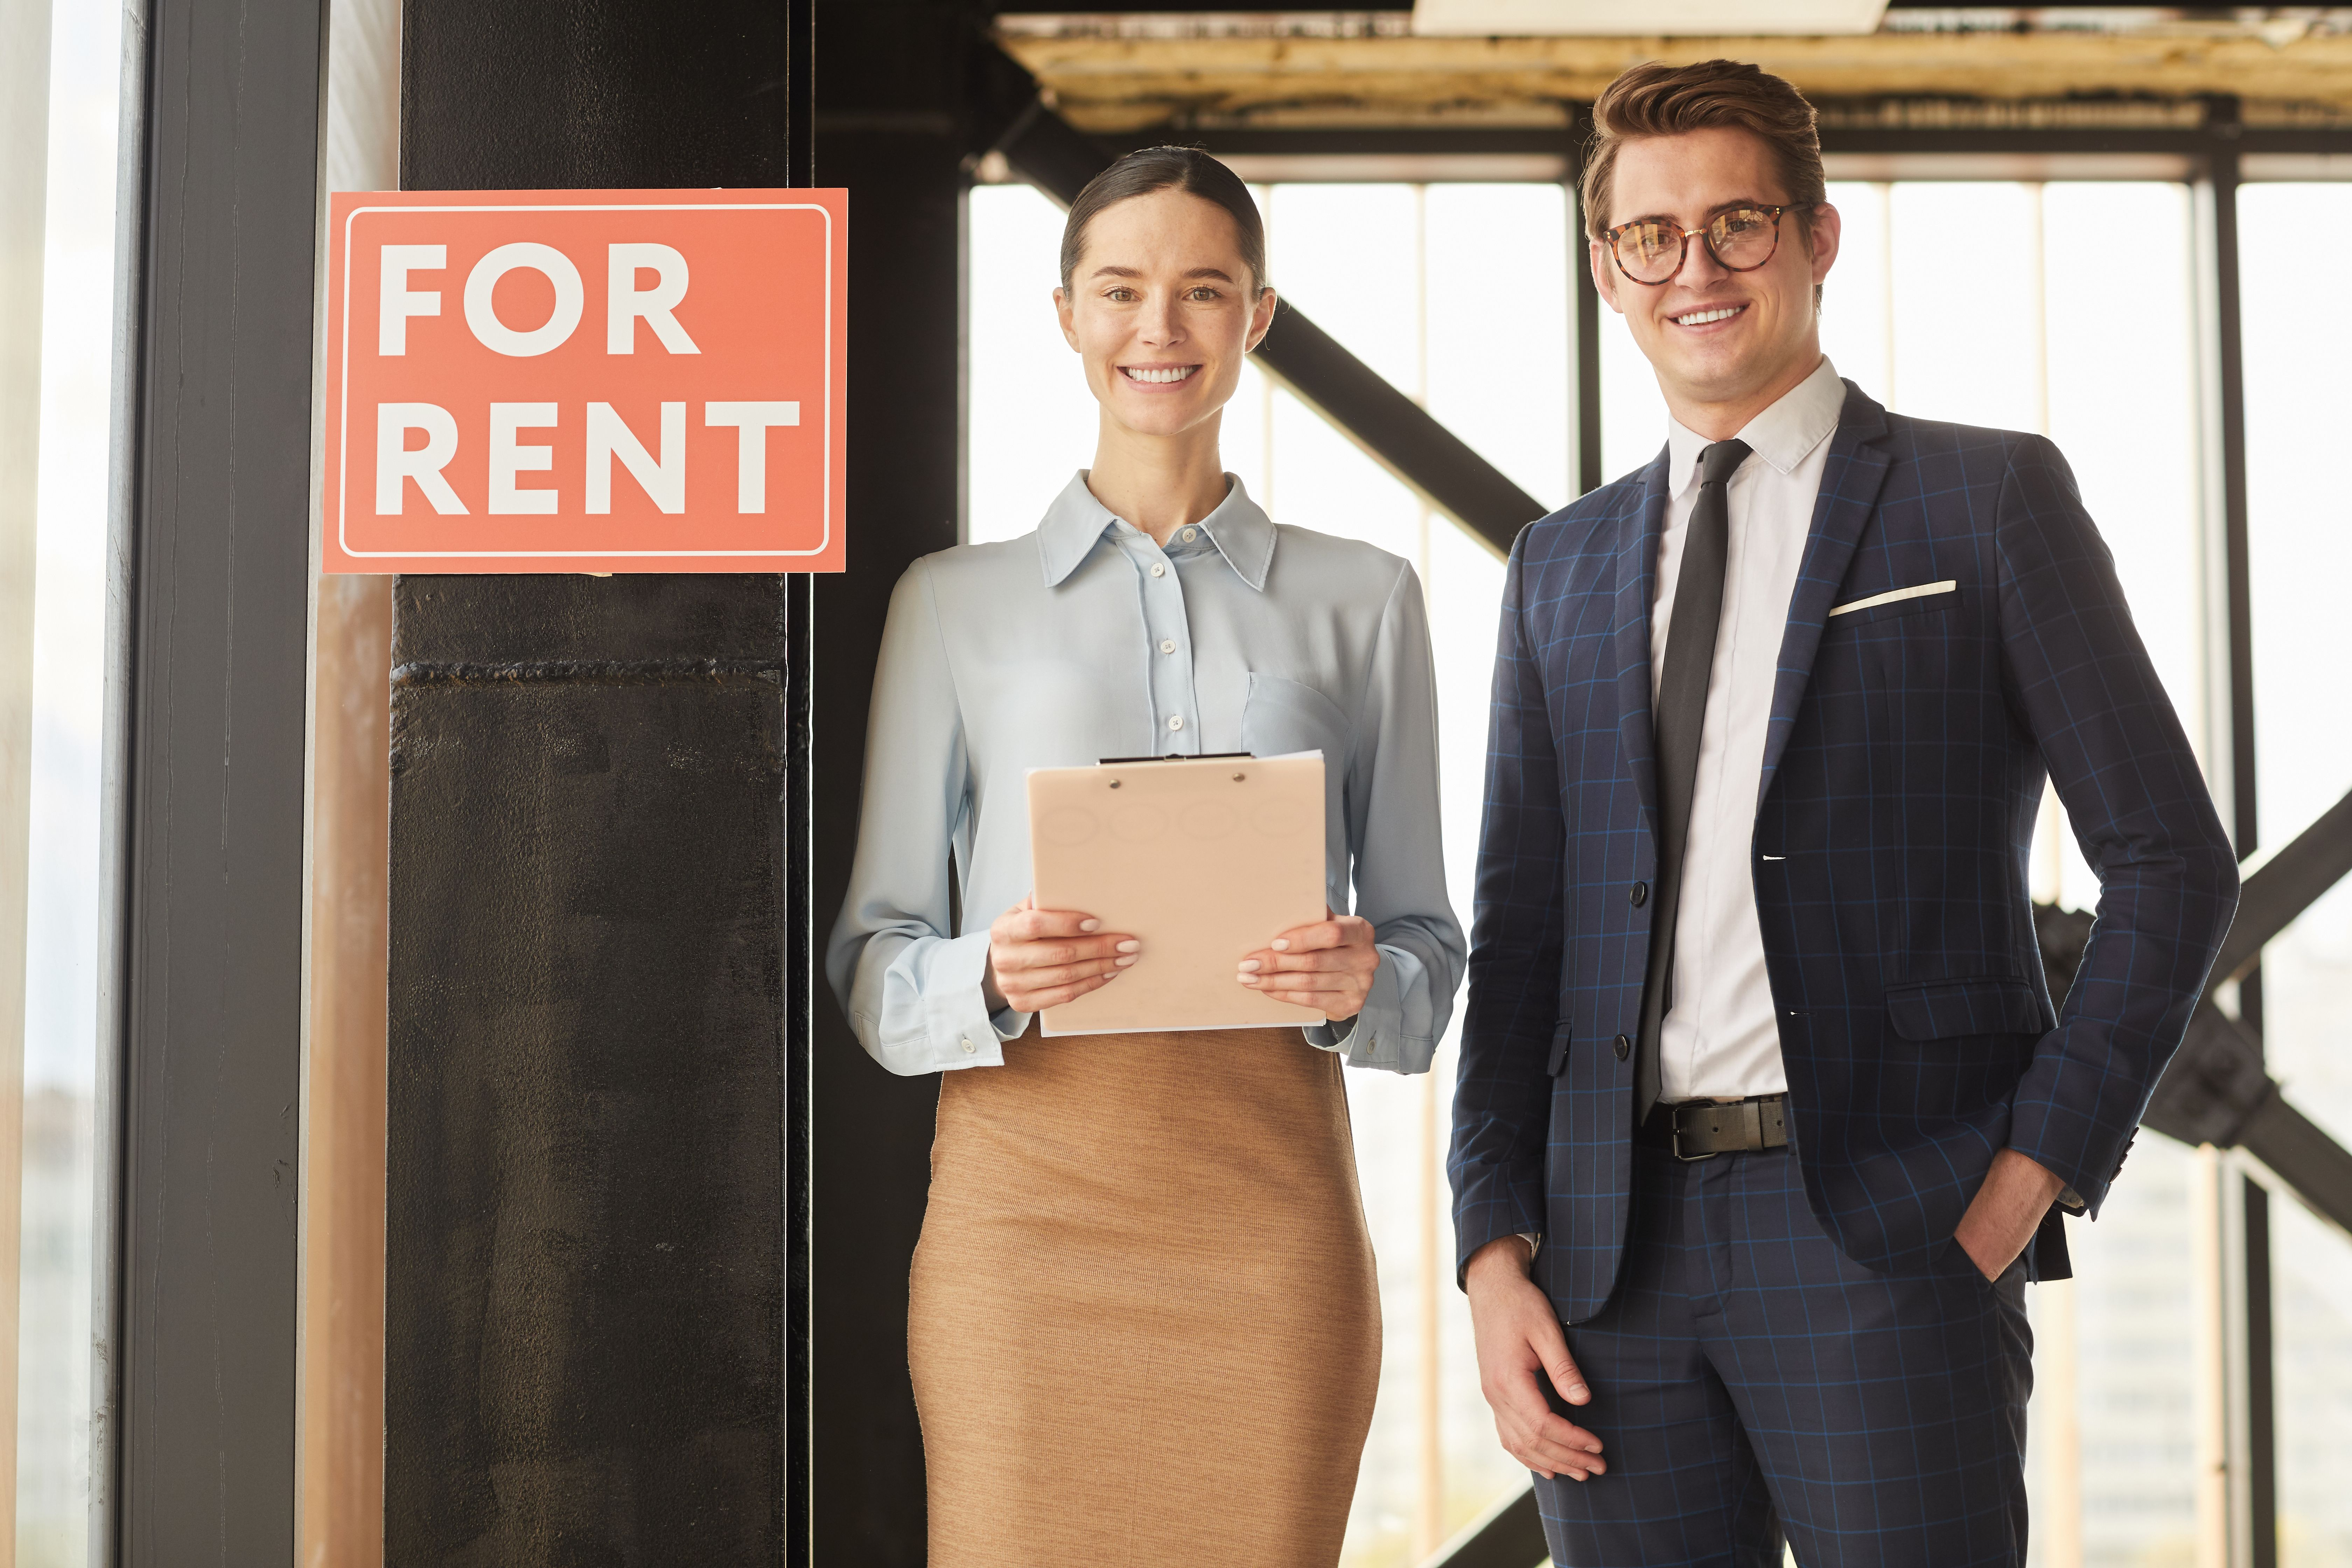 Waist up portrait of two real estate agents smiling at the camera while standing next to a red sign says For Rent